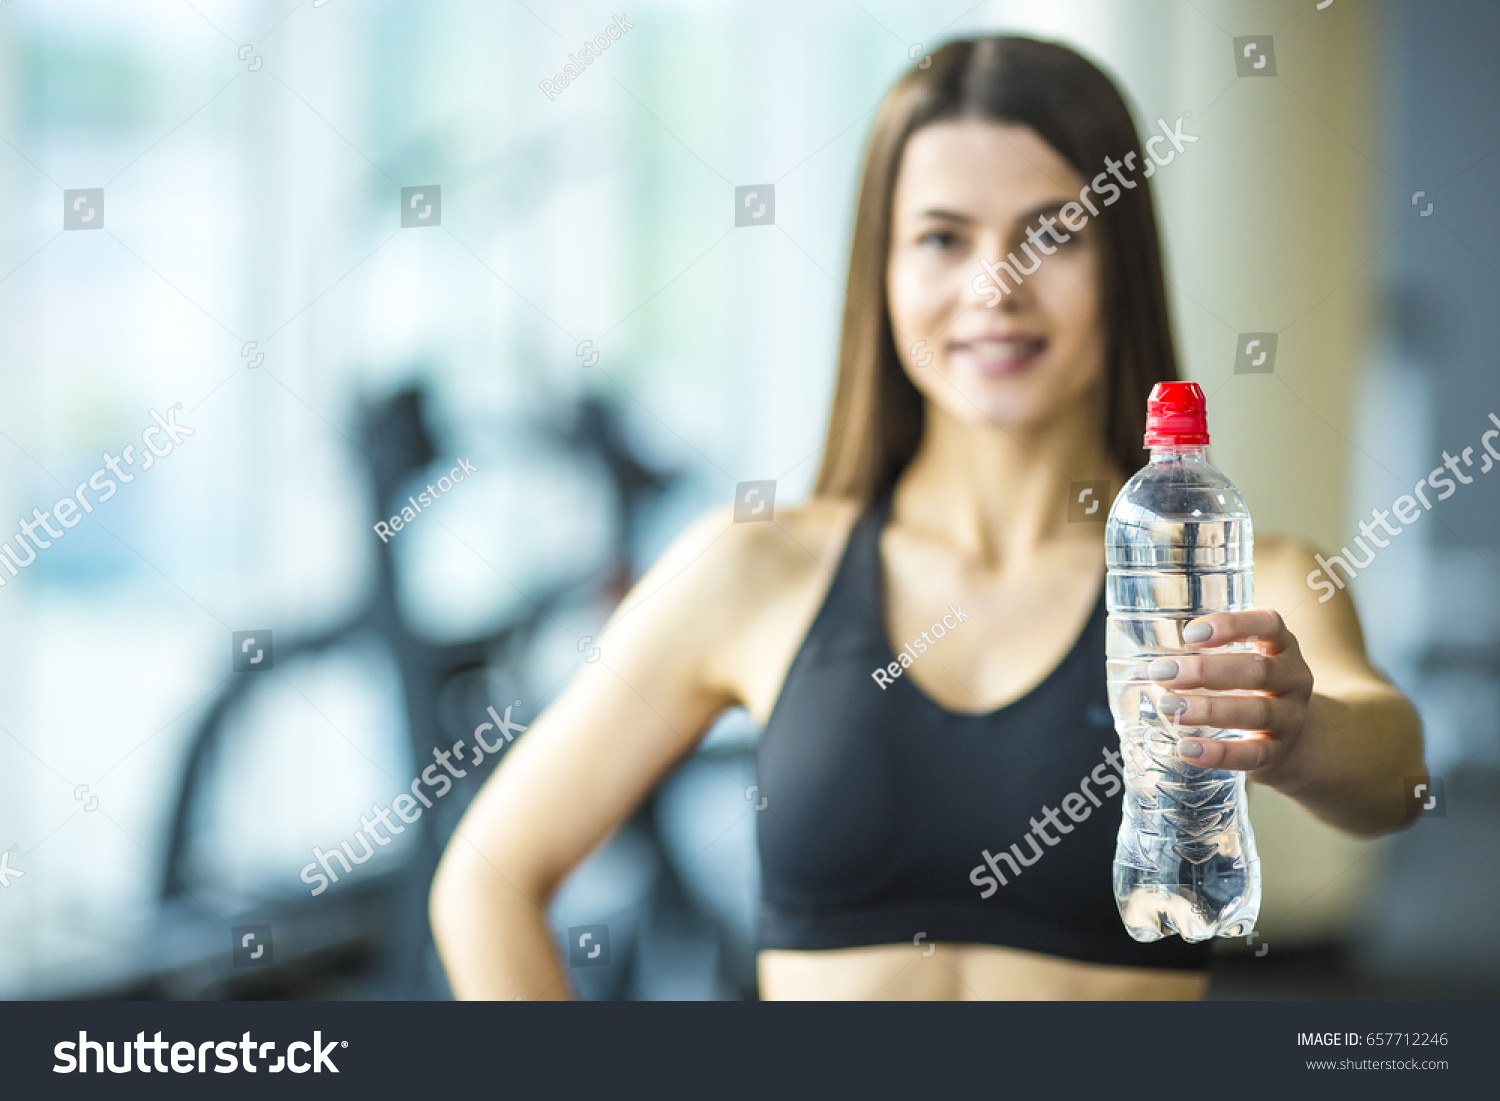 Young woman hold bottle water gym stock photo 657712246 shutterstock the young woman hold a bottle of a water in the gym sciox Gallery